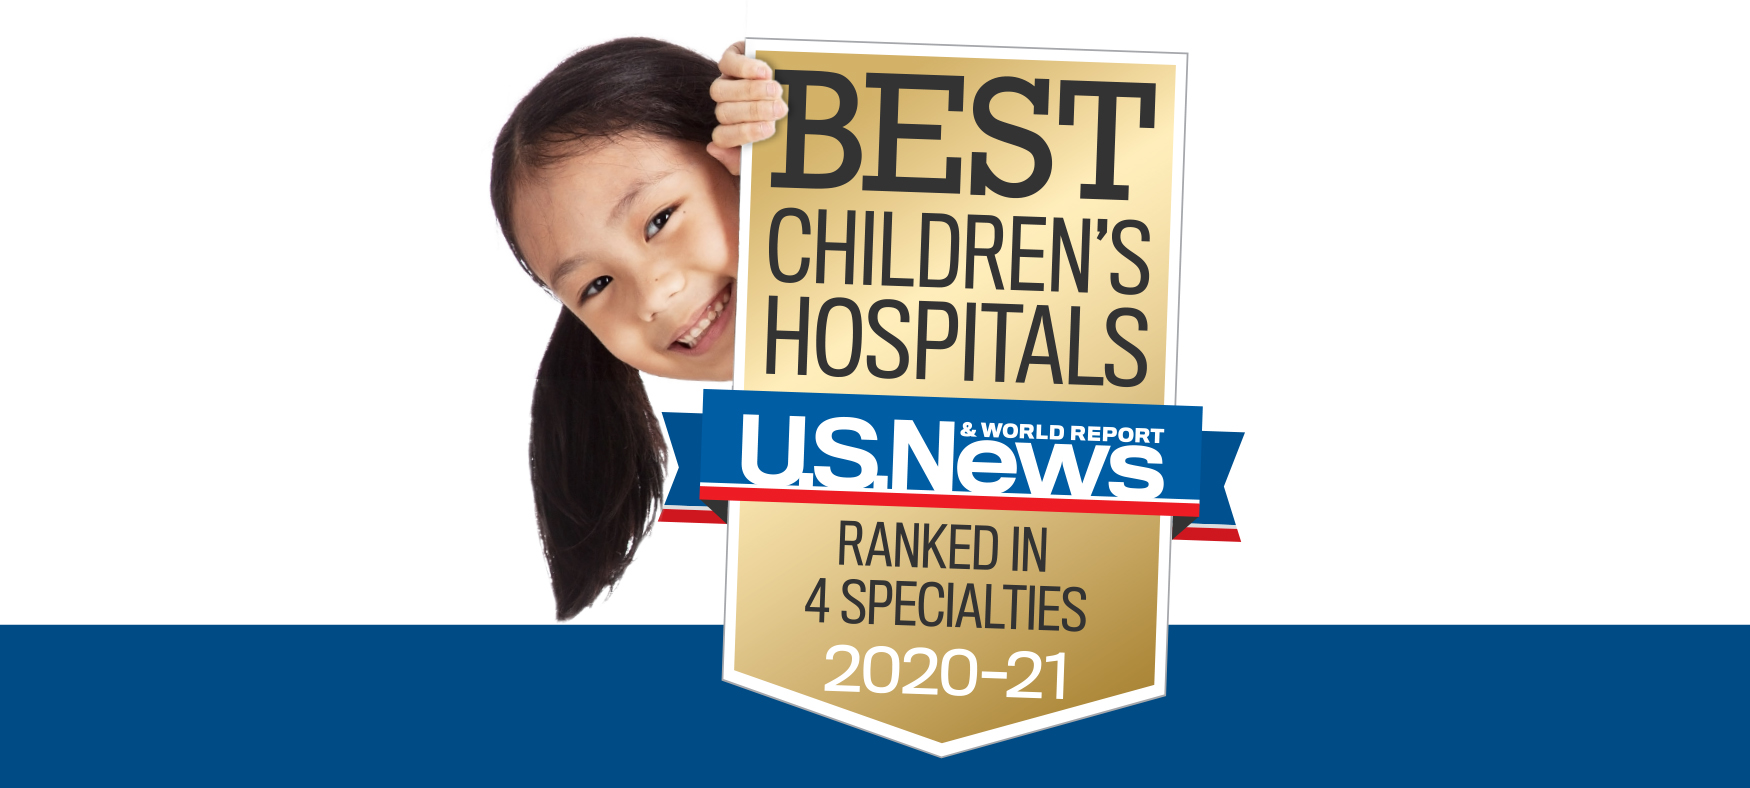 UC Davis Children's Hospital and Medical Center